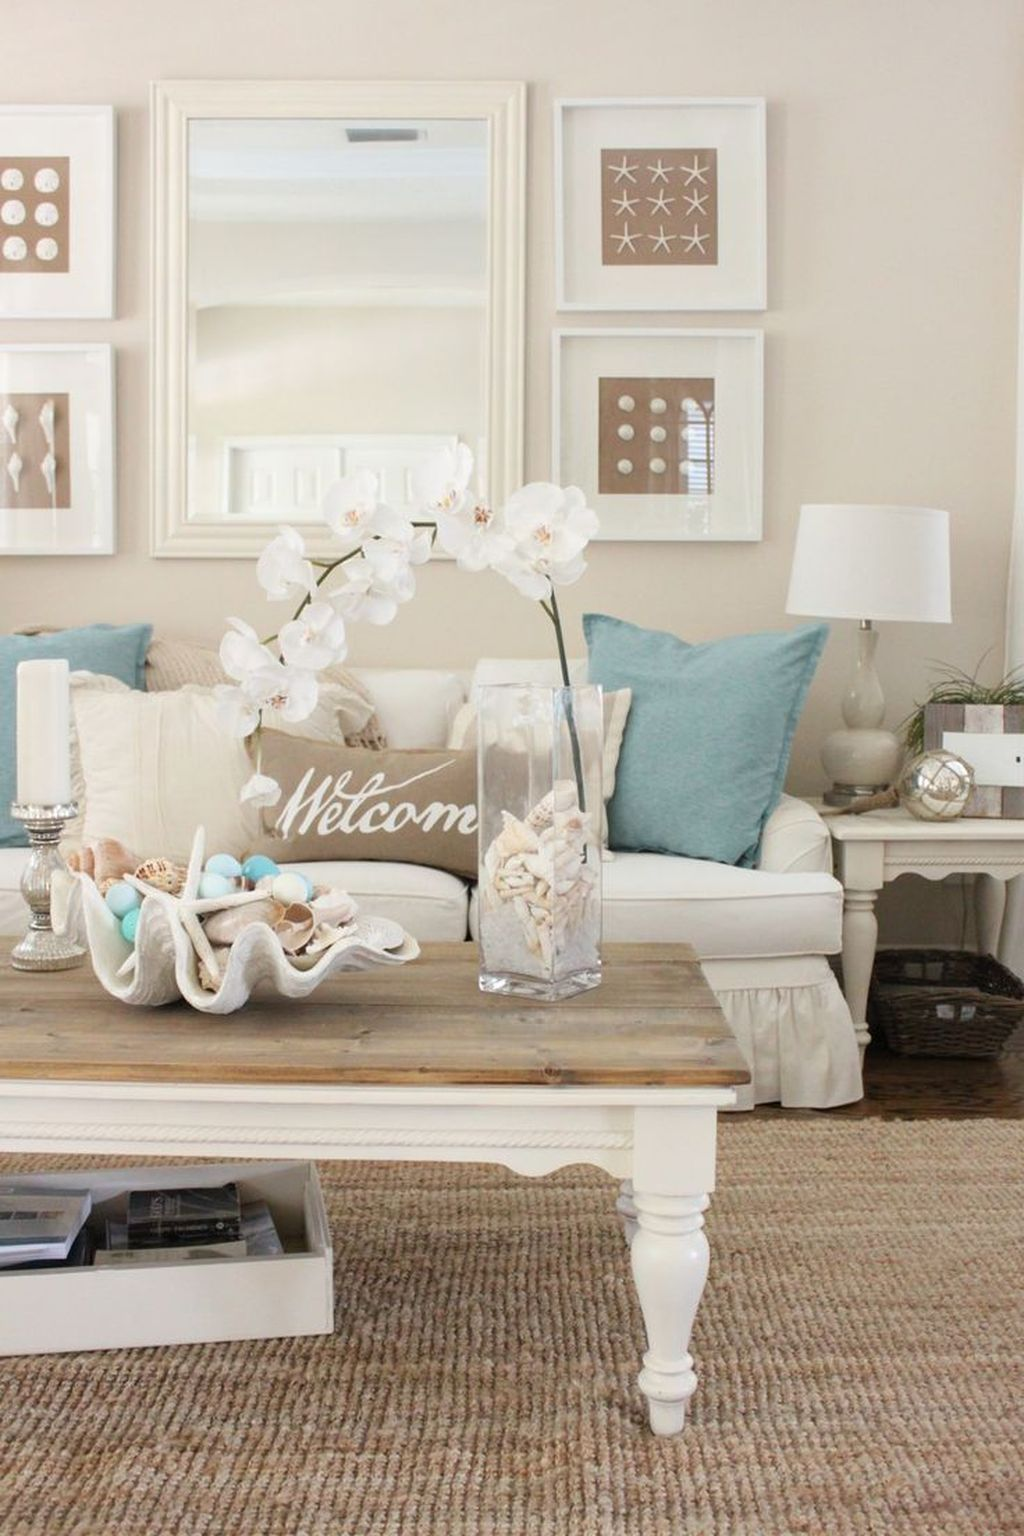 Awesome 66 Beautiful Coastal Themed Living Room Decorating Ideas To ...